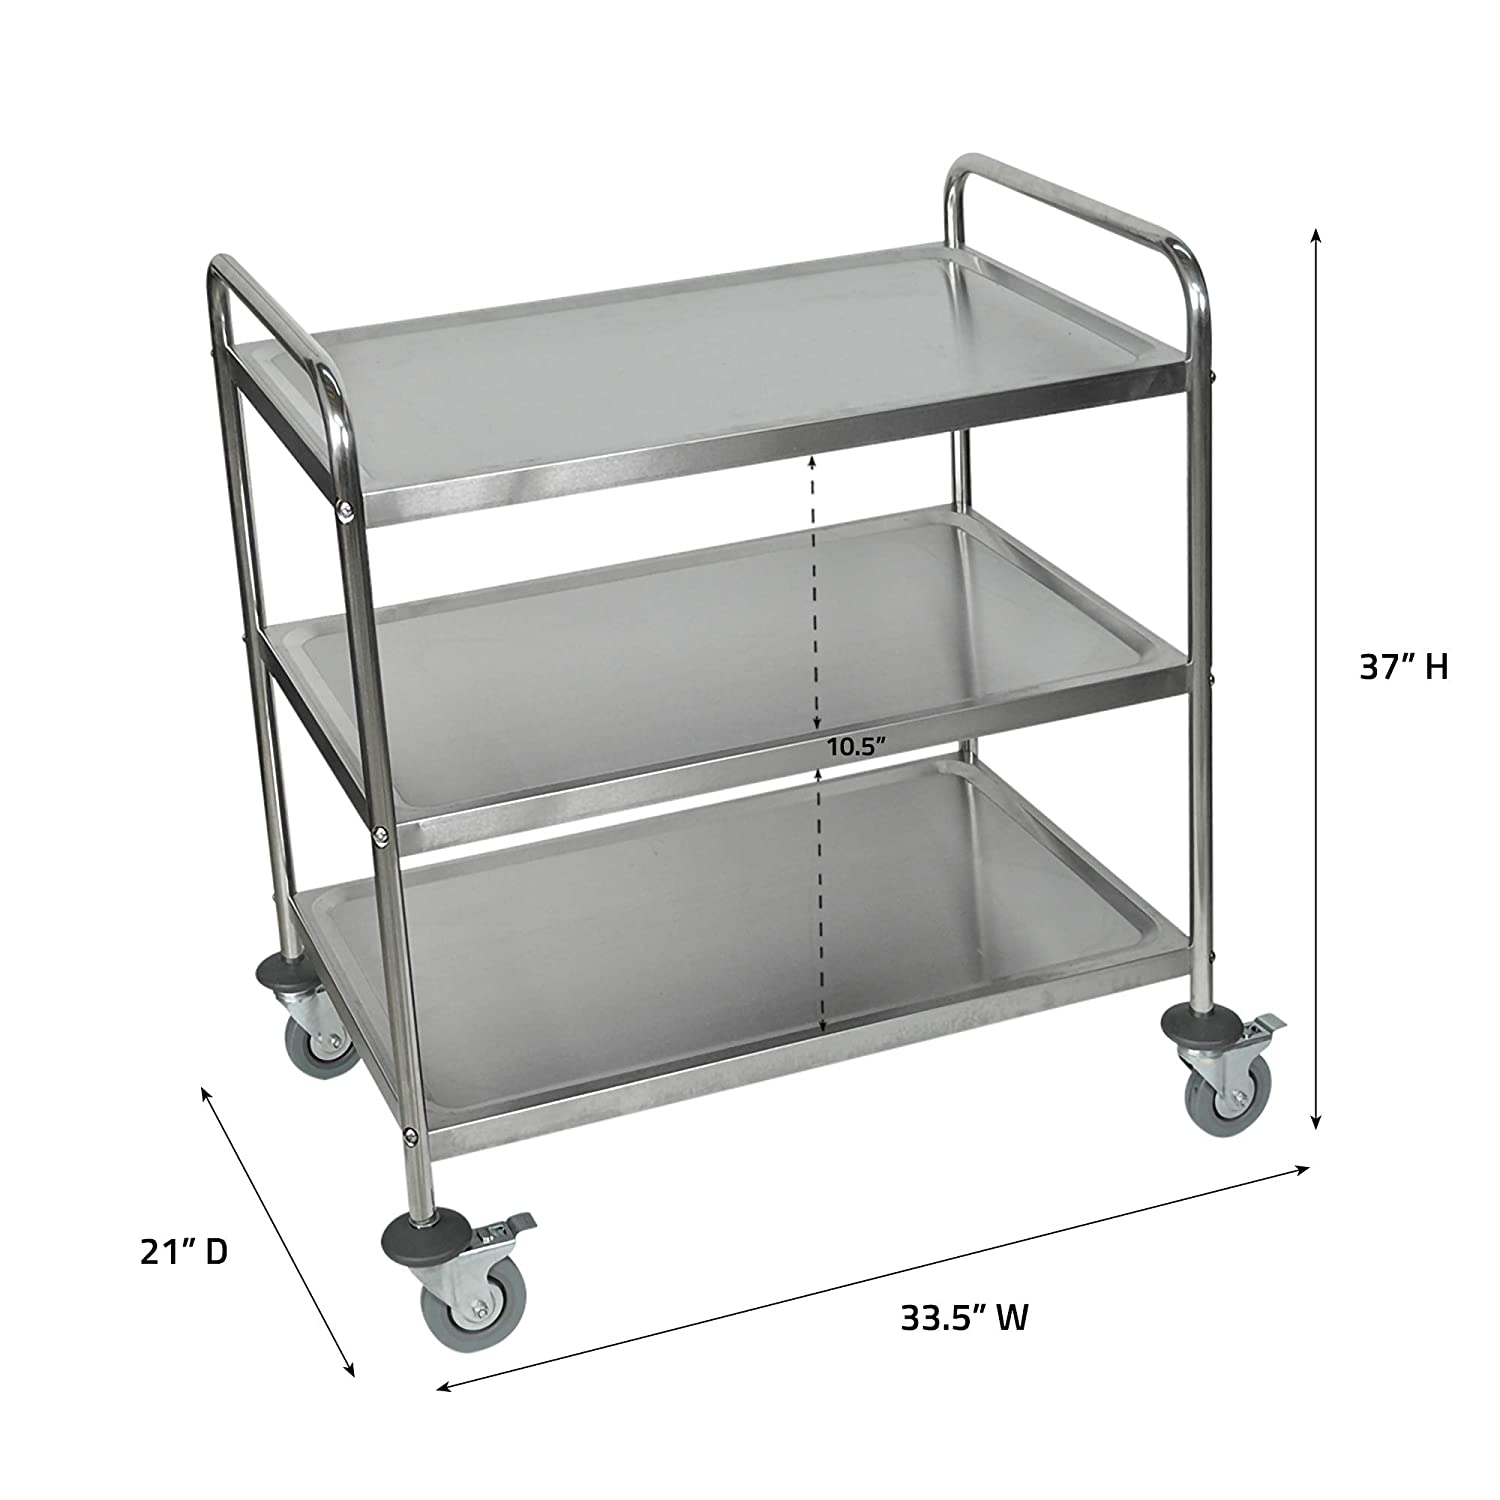 Luxor Stainless Steel 3 Shelf Cart Kitchen Storage Carts Industrial Scientific